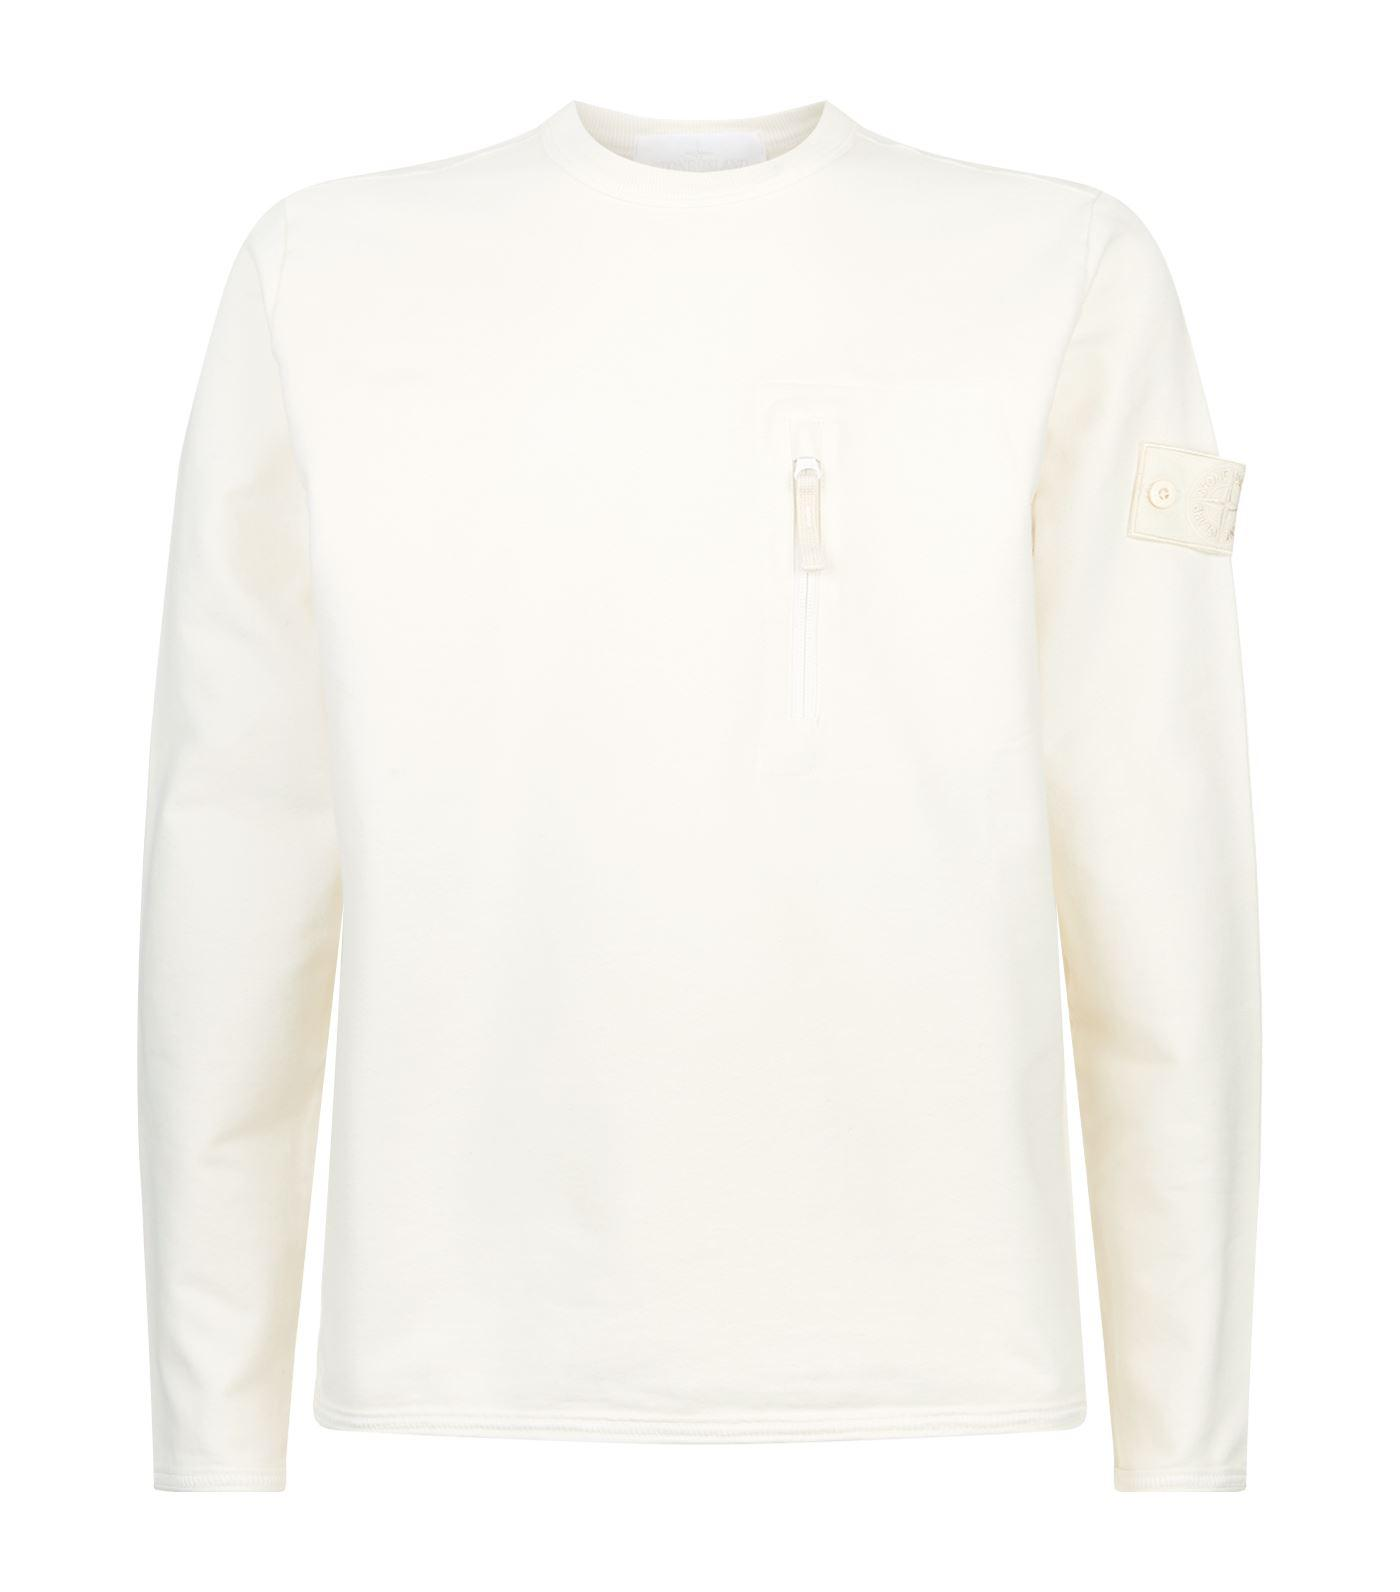 Stone Island Ghost Crew Neck Sweater In White For Men Lyst